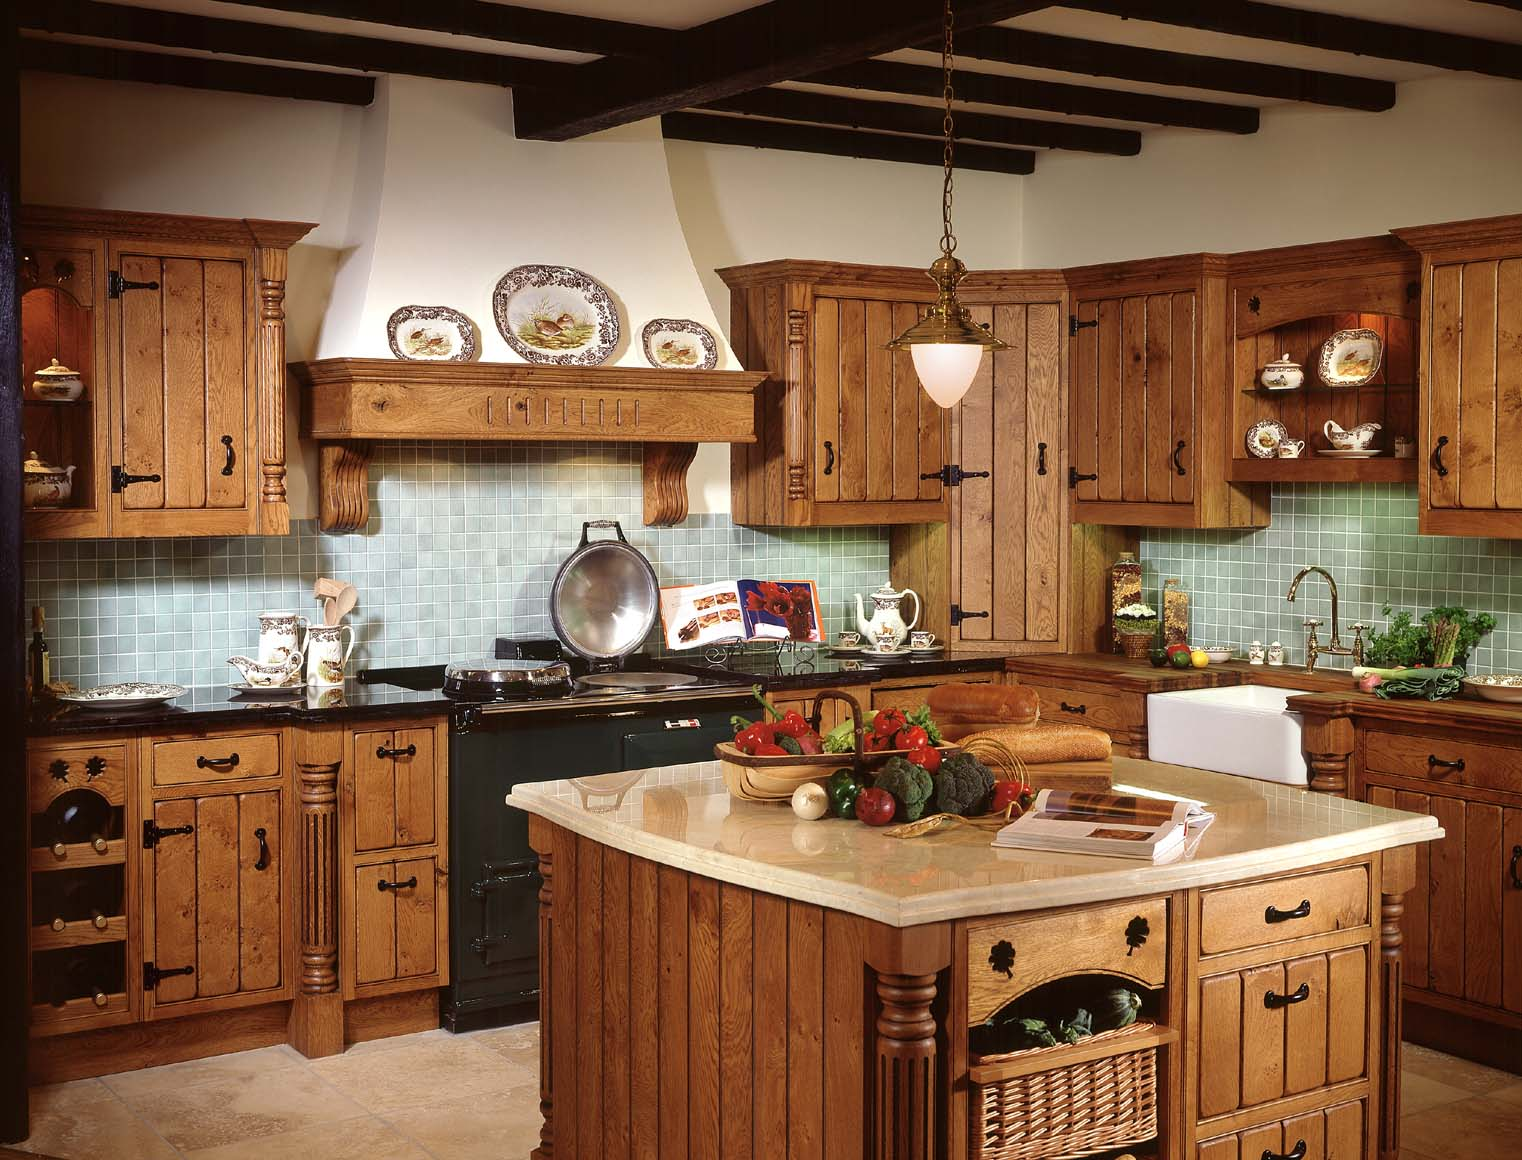 Fill Rustic Kitchen Decorating Ideas With Wooden Island And Old Fashioned  Counter Under Wooden Beams